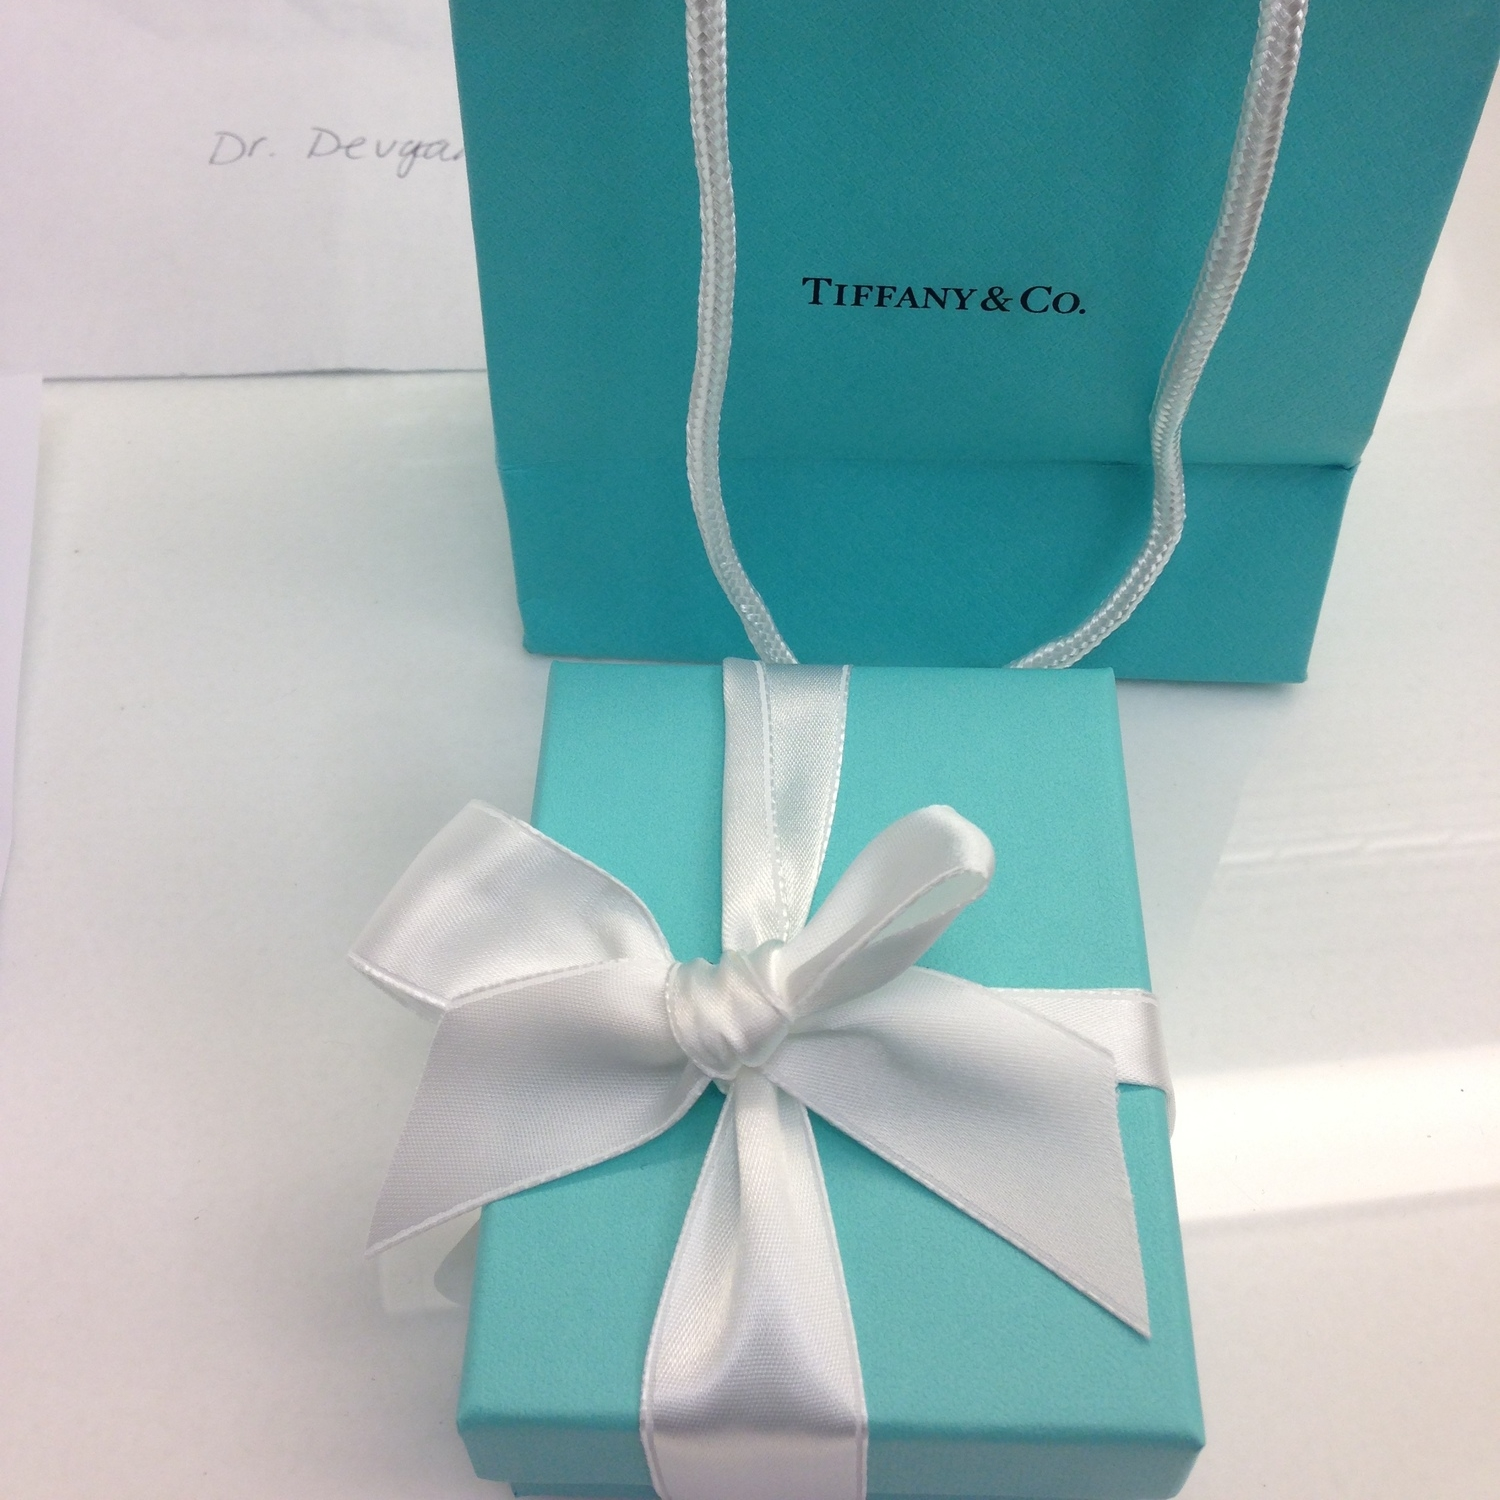 Gift box from a breast lift and liposuction patient